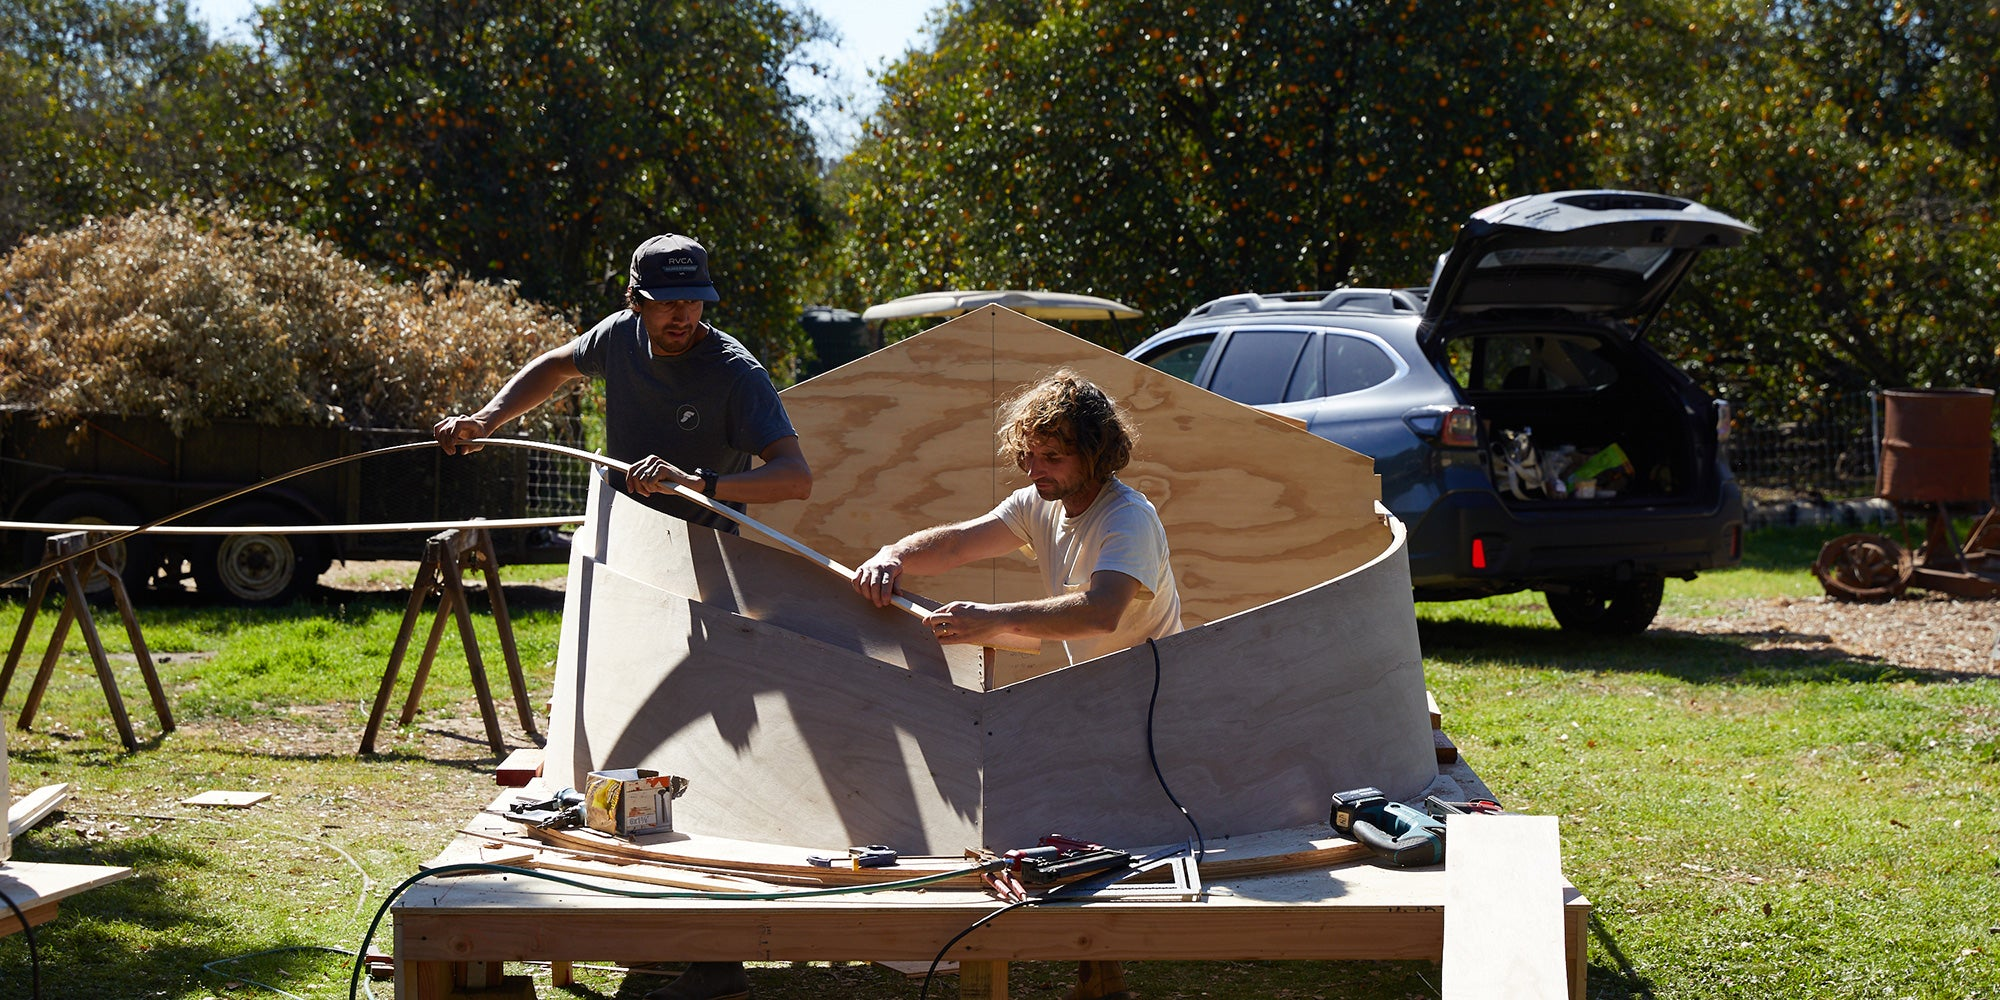 Building the boat hull